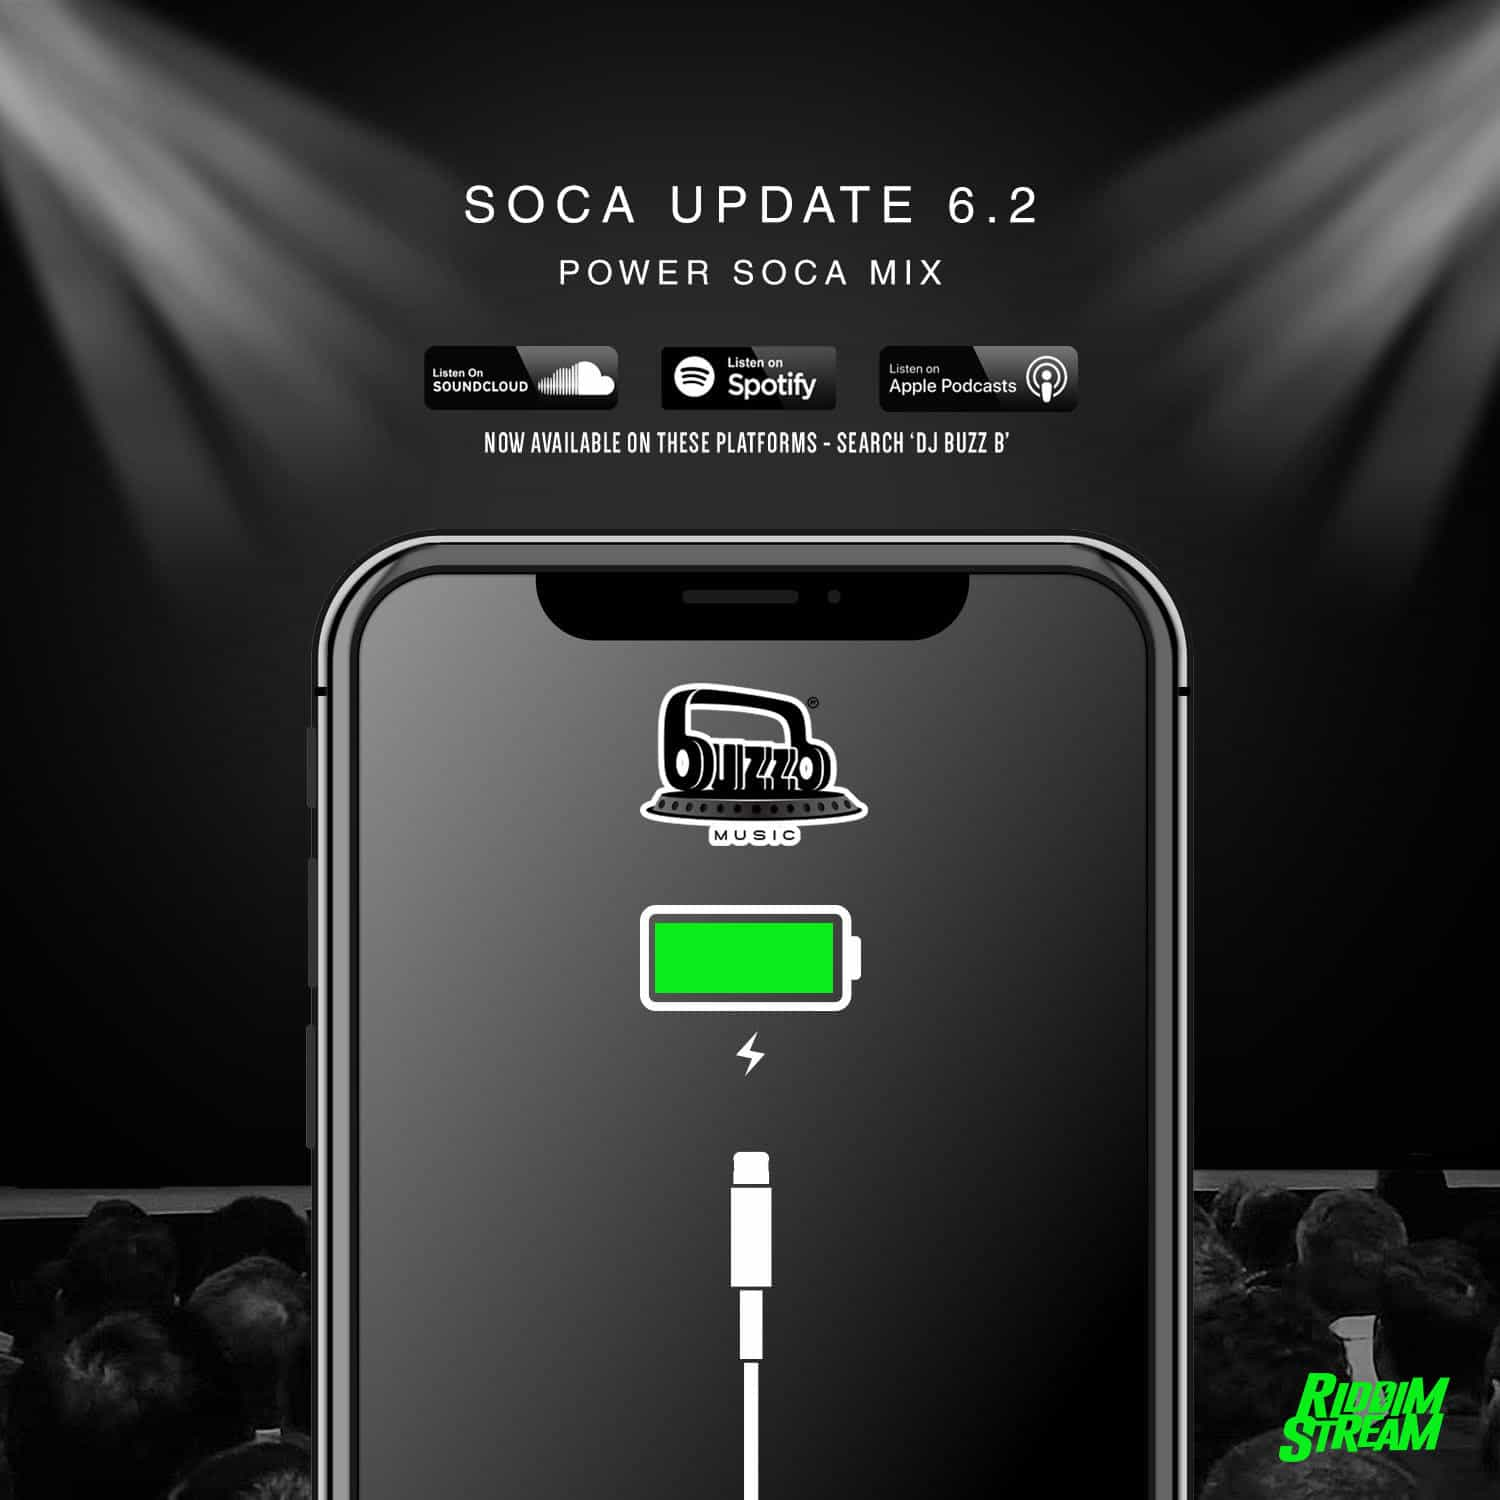 DJ BuzzB - Soca Update 6.2 - New 2020 Power Soca